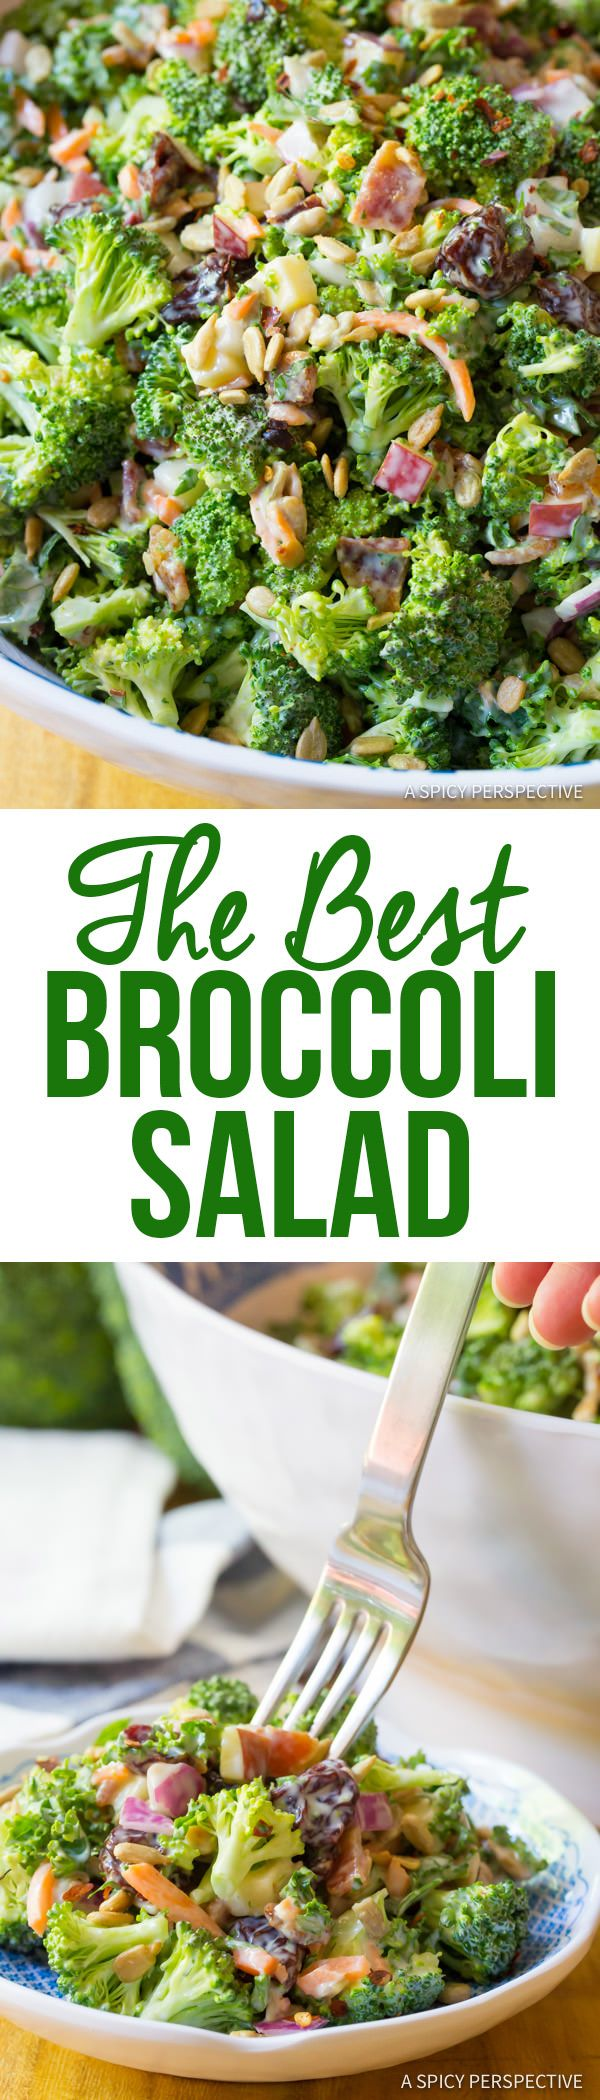 Absolutely The Best Broccoli Salad Recipe | ASpicyPerspective.com via @spicyperspectiv